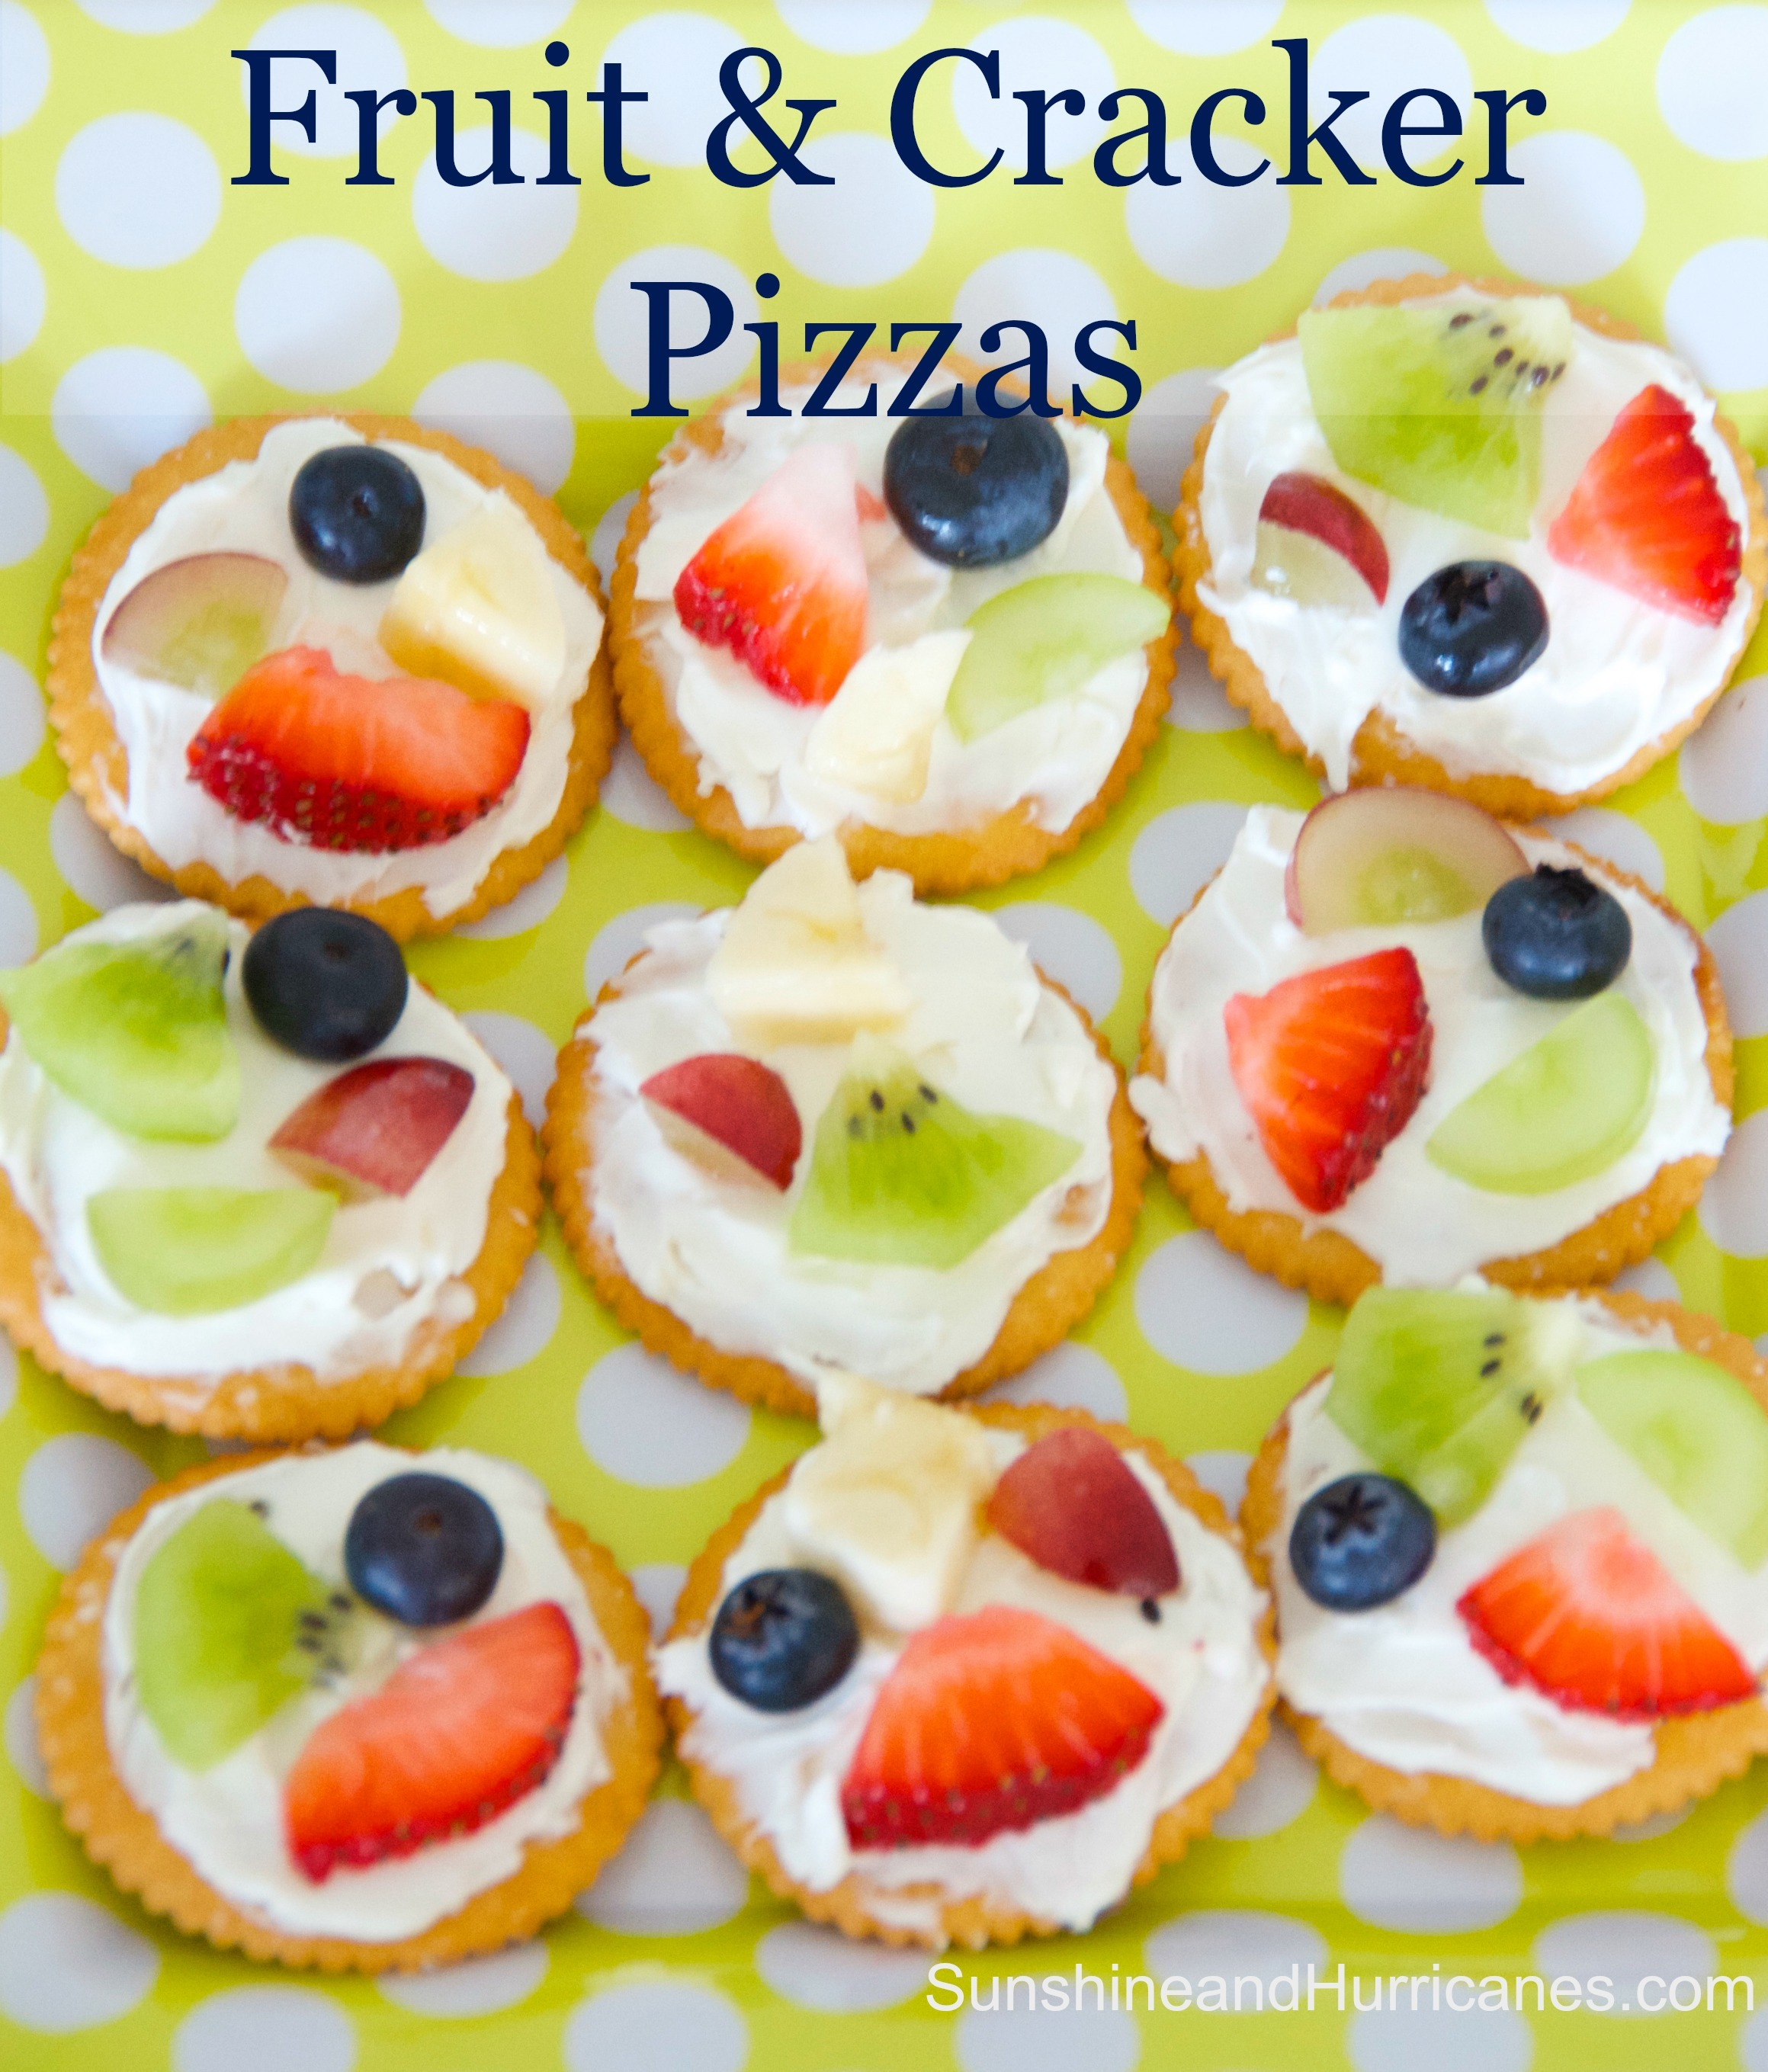 Desert Home Plans Easy Fruit And Cracker Pizzas